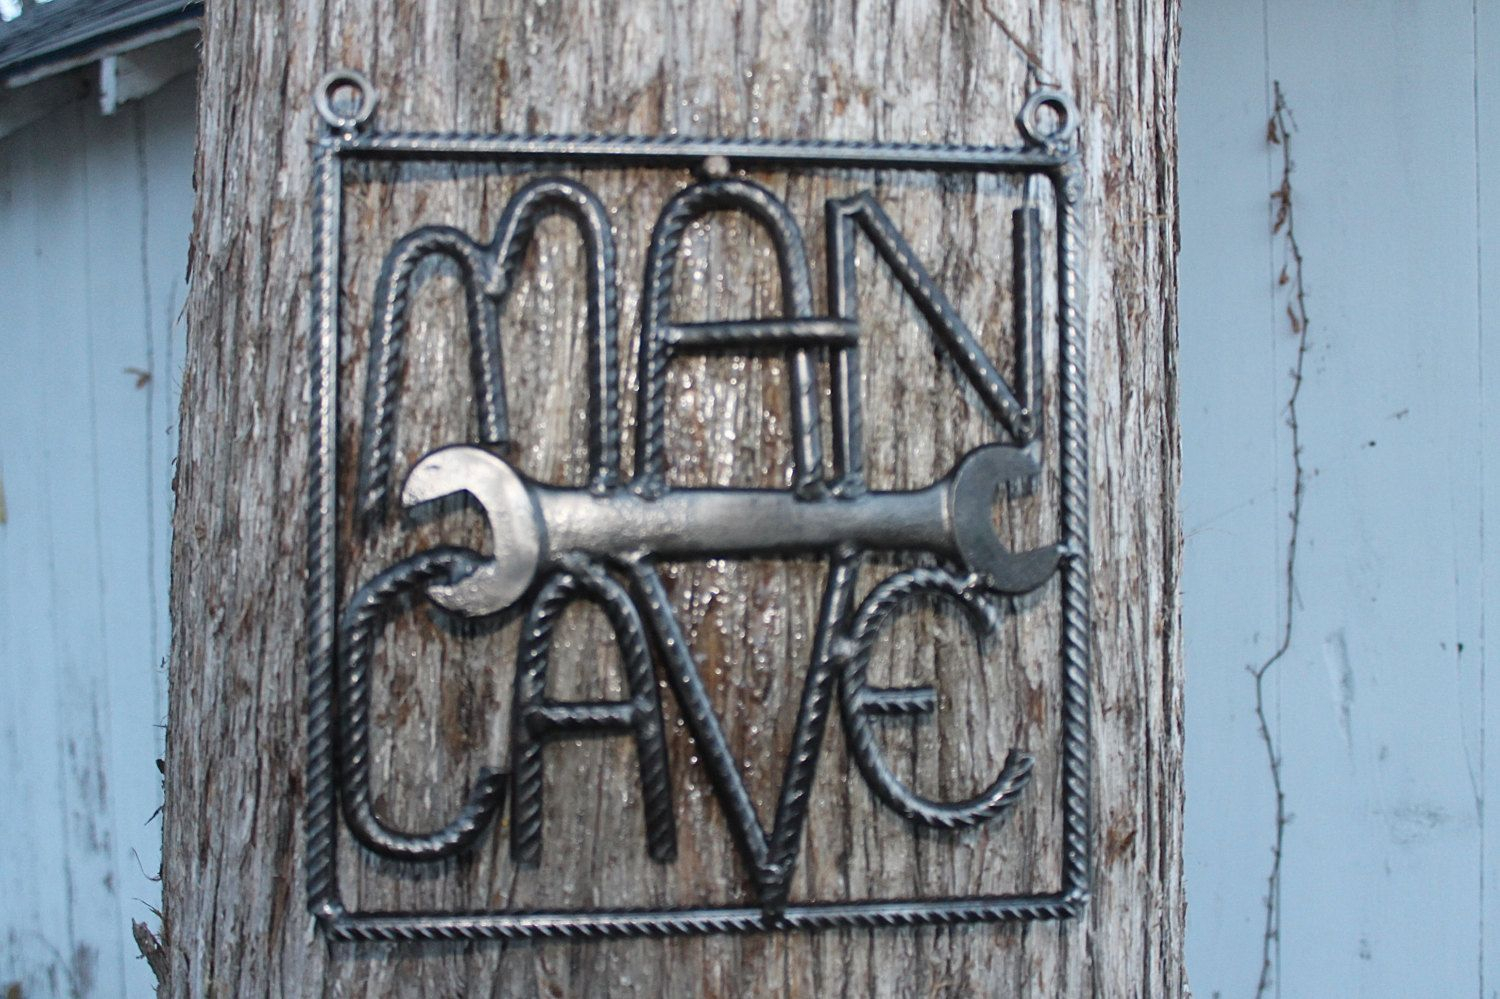 Salvaged Rebar Man Cave Sign, Rebar Art, Gift For Him pertaining to Coffee Sign With Rebar Wall Decor (Image 27 of 30)